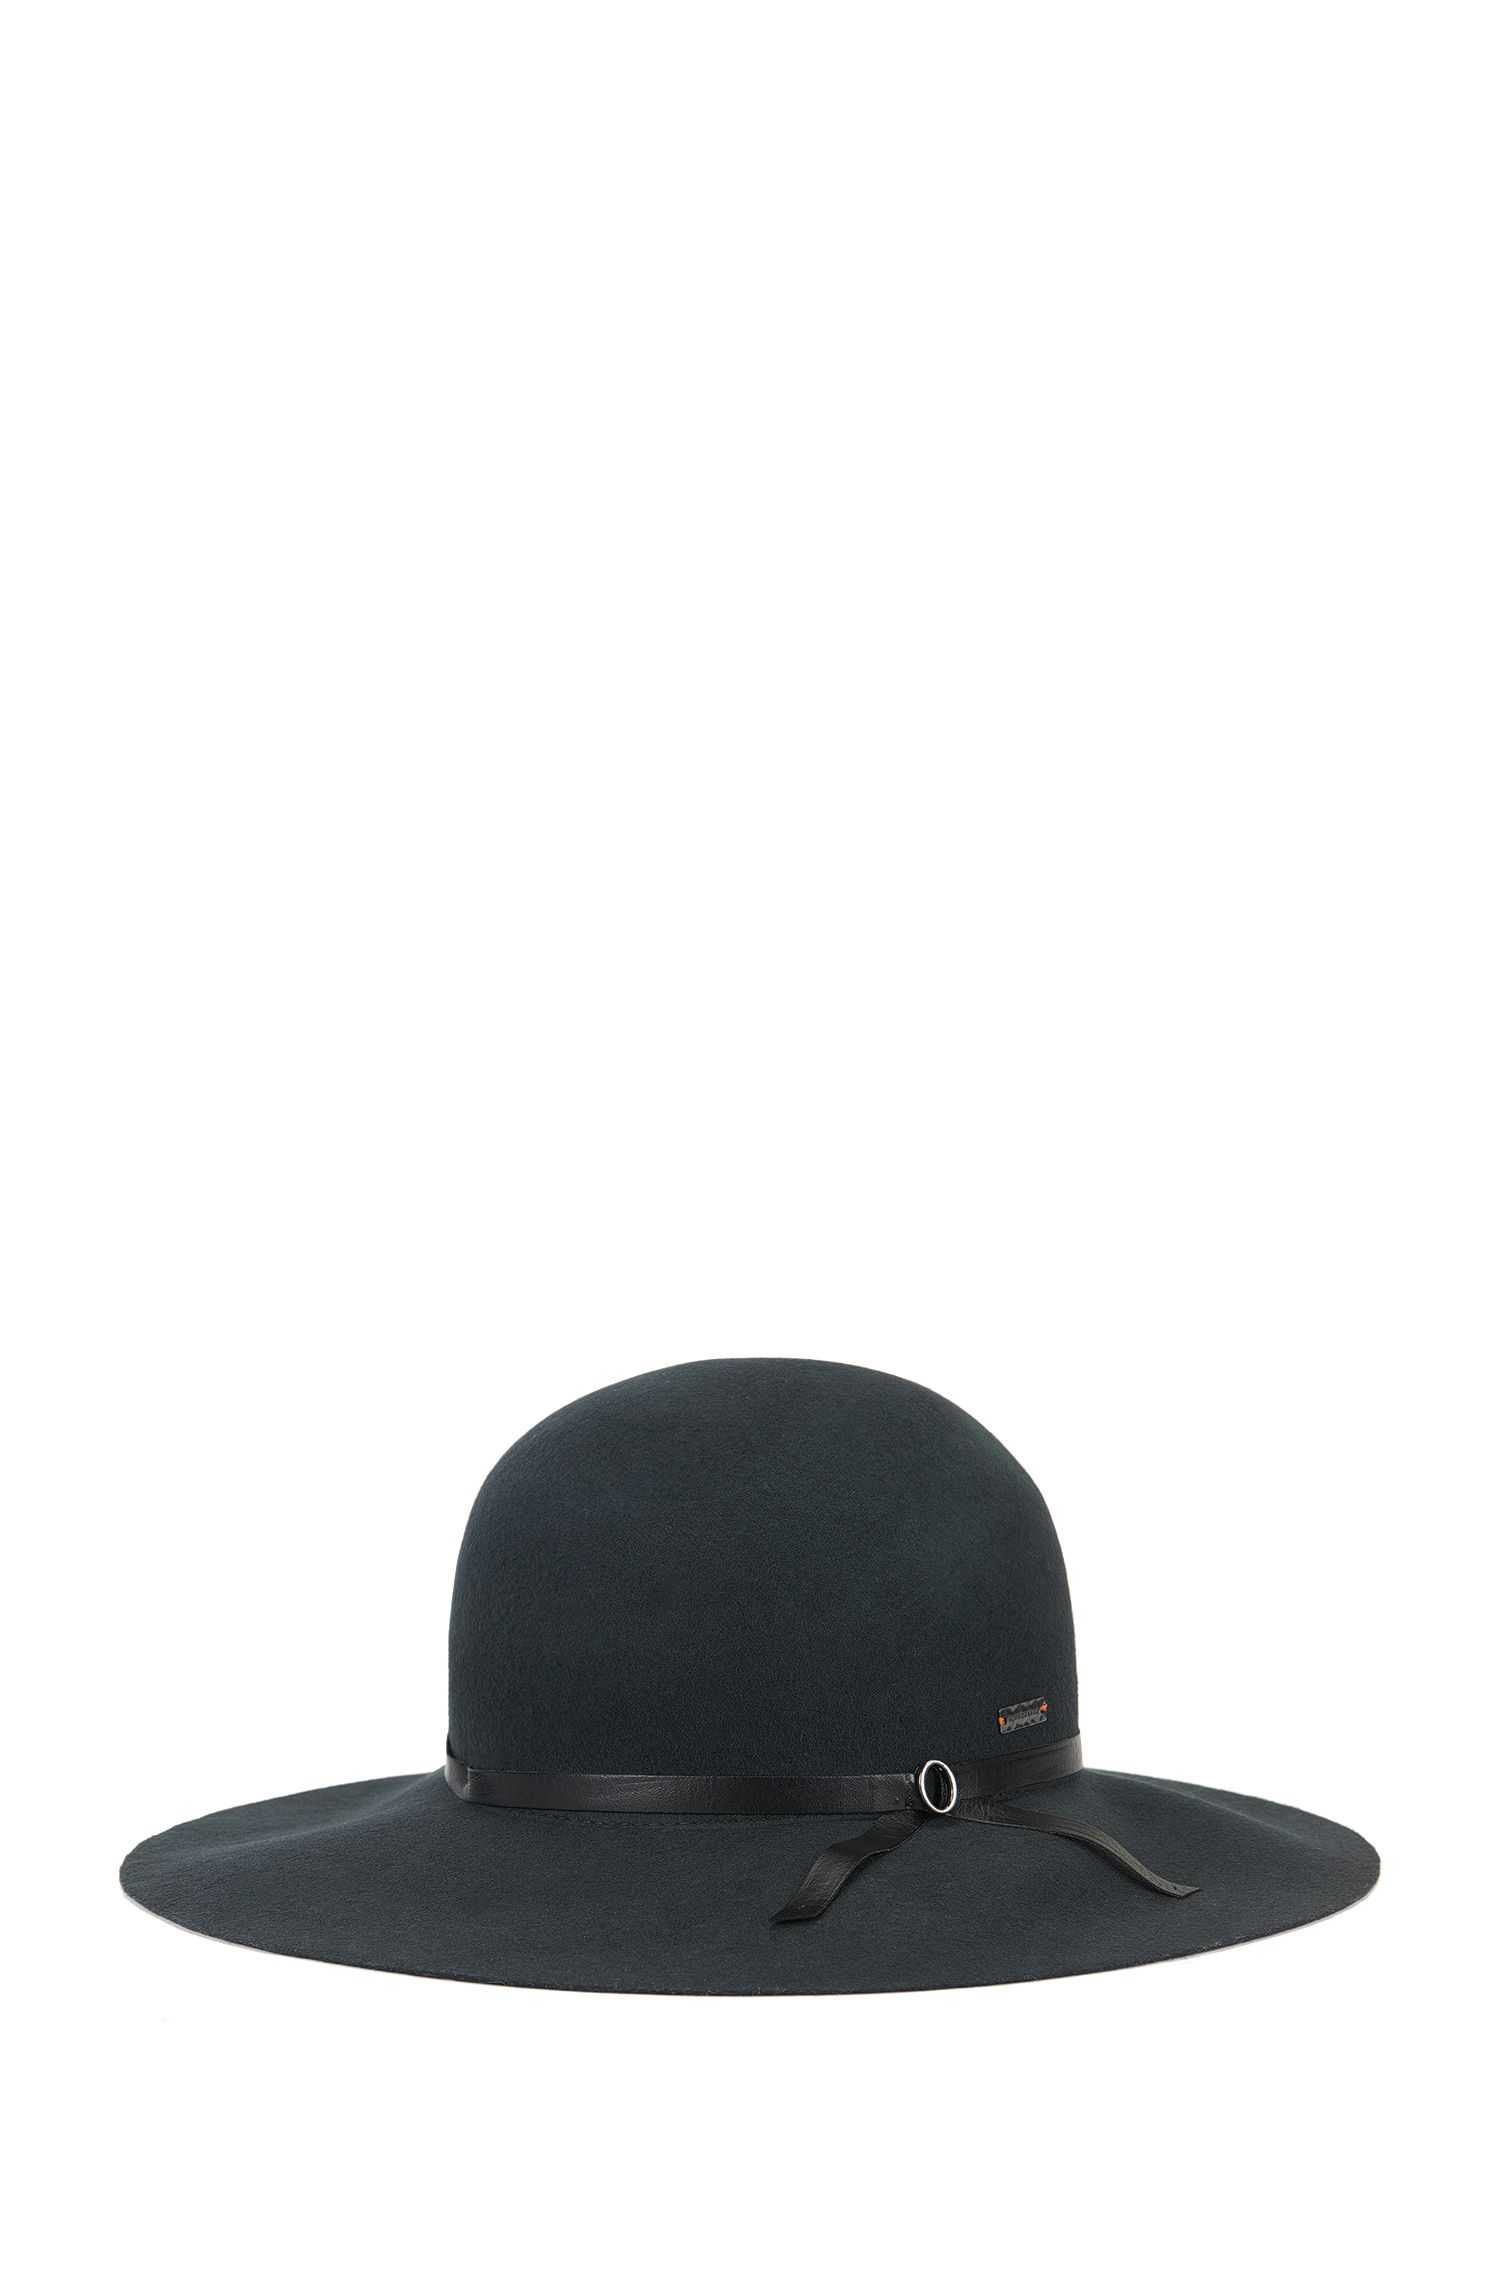 Wool hat with a wide brim